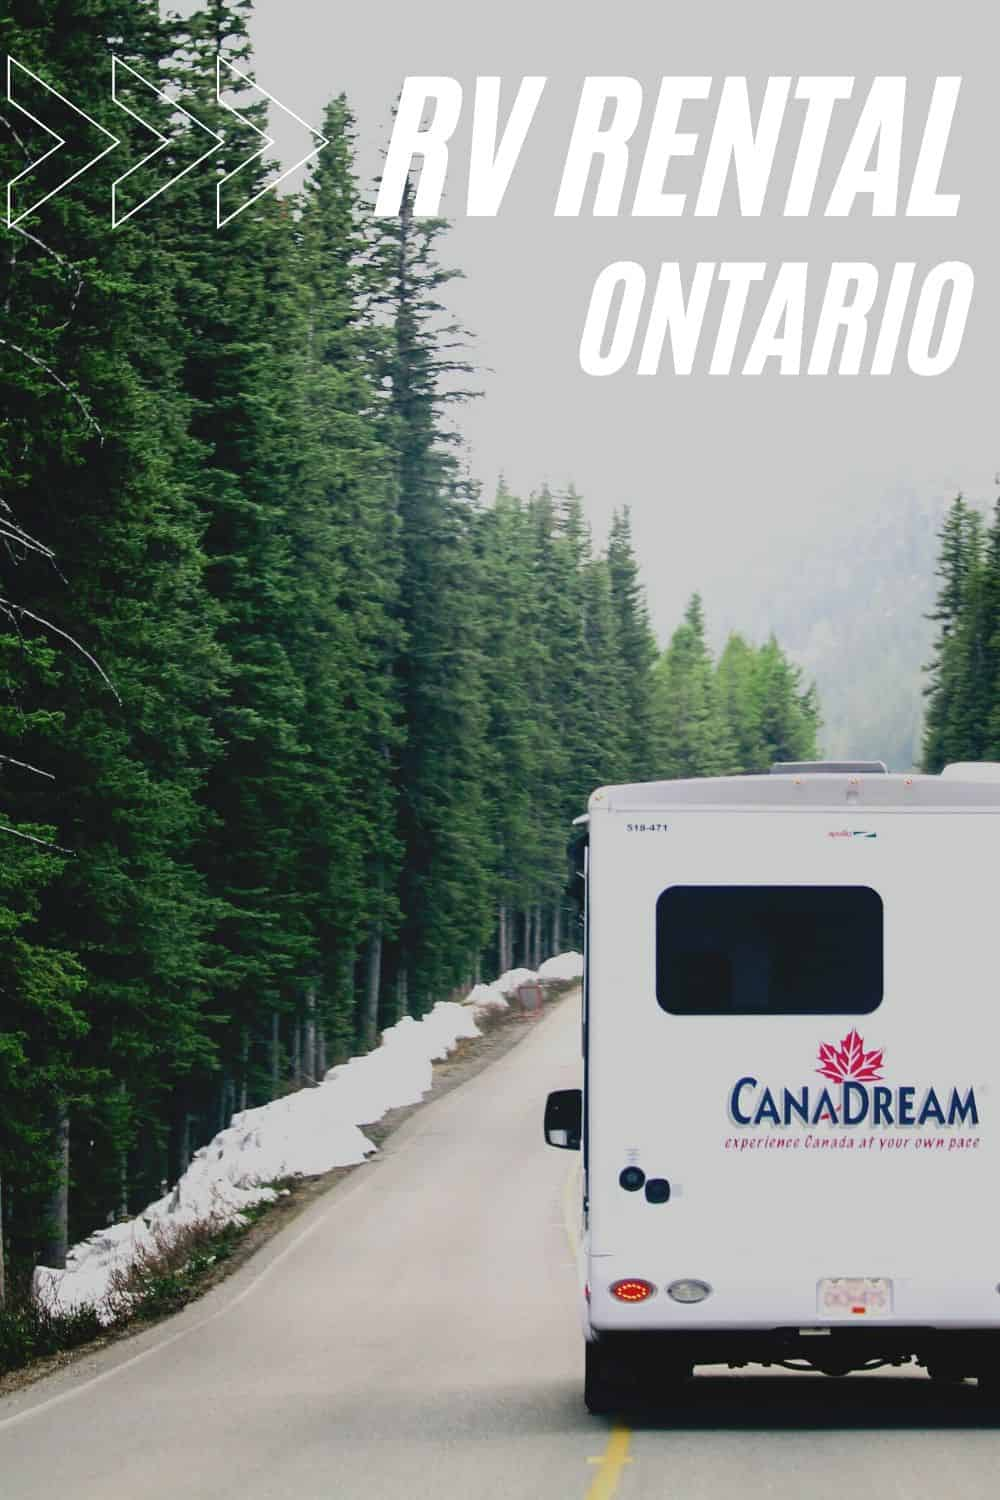 How to Find RV Rentals in Ontario